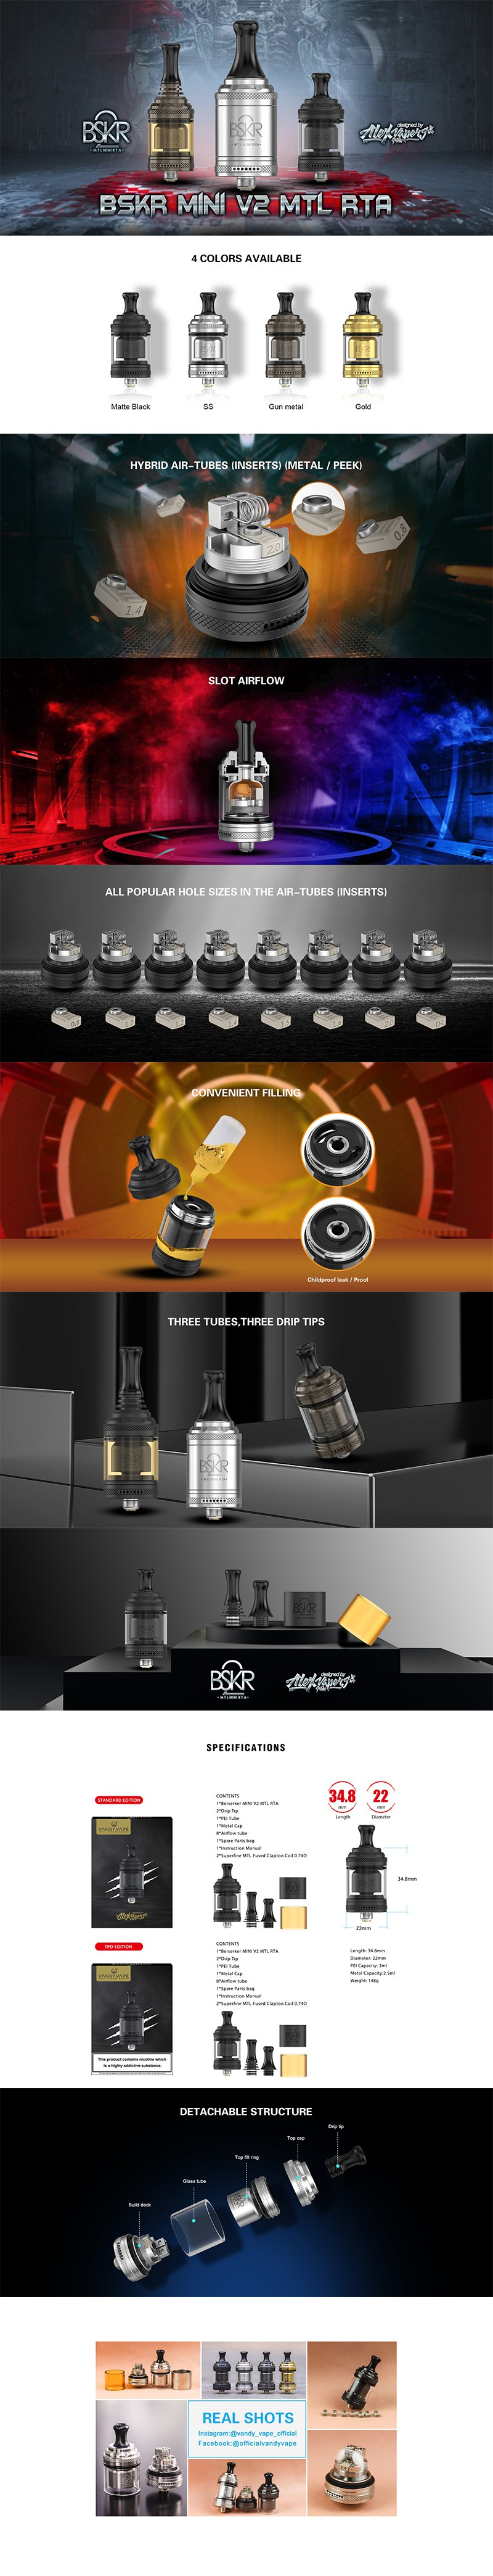 Authentic Vandy Vape Berserker Mini V2 MTL RTA Vape Atomizer